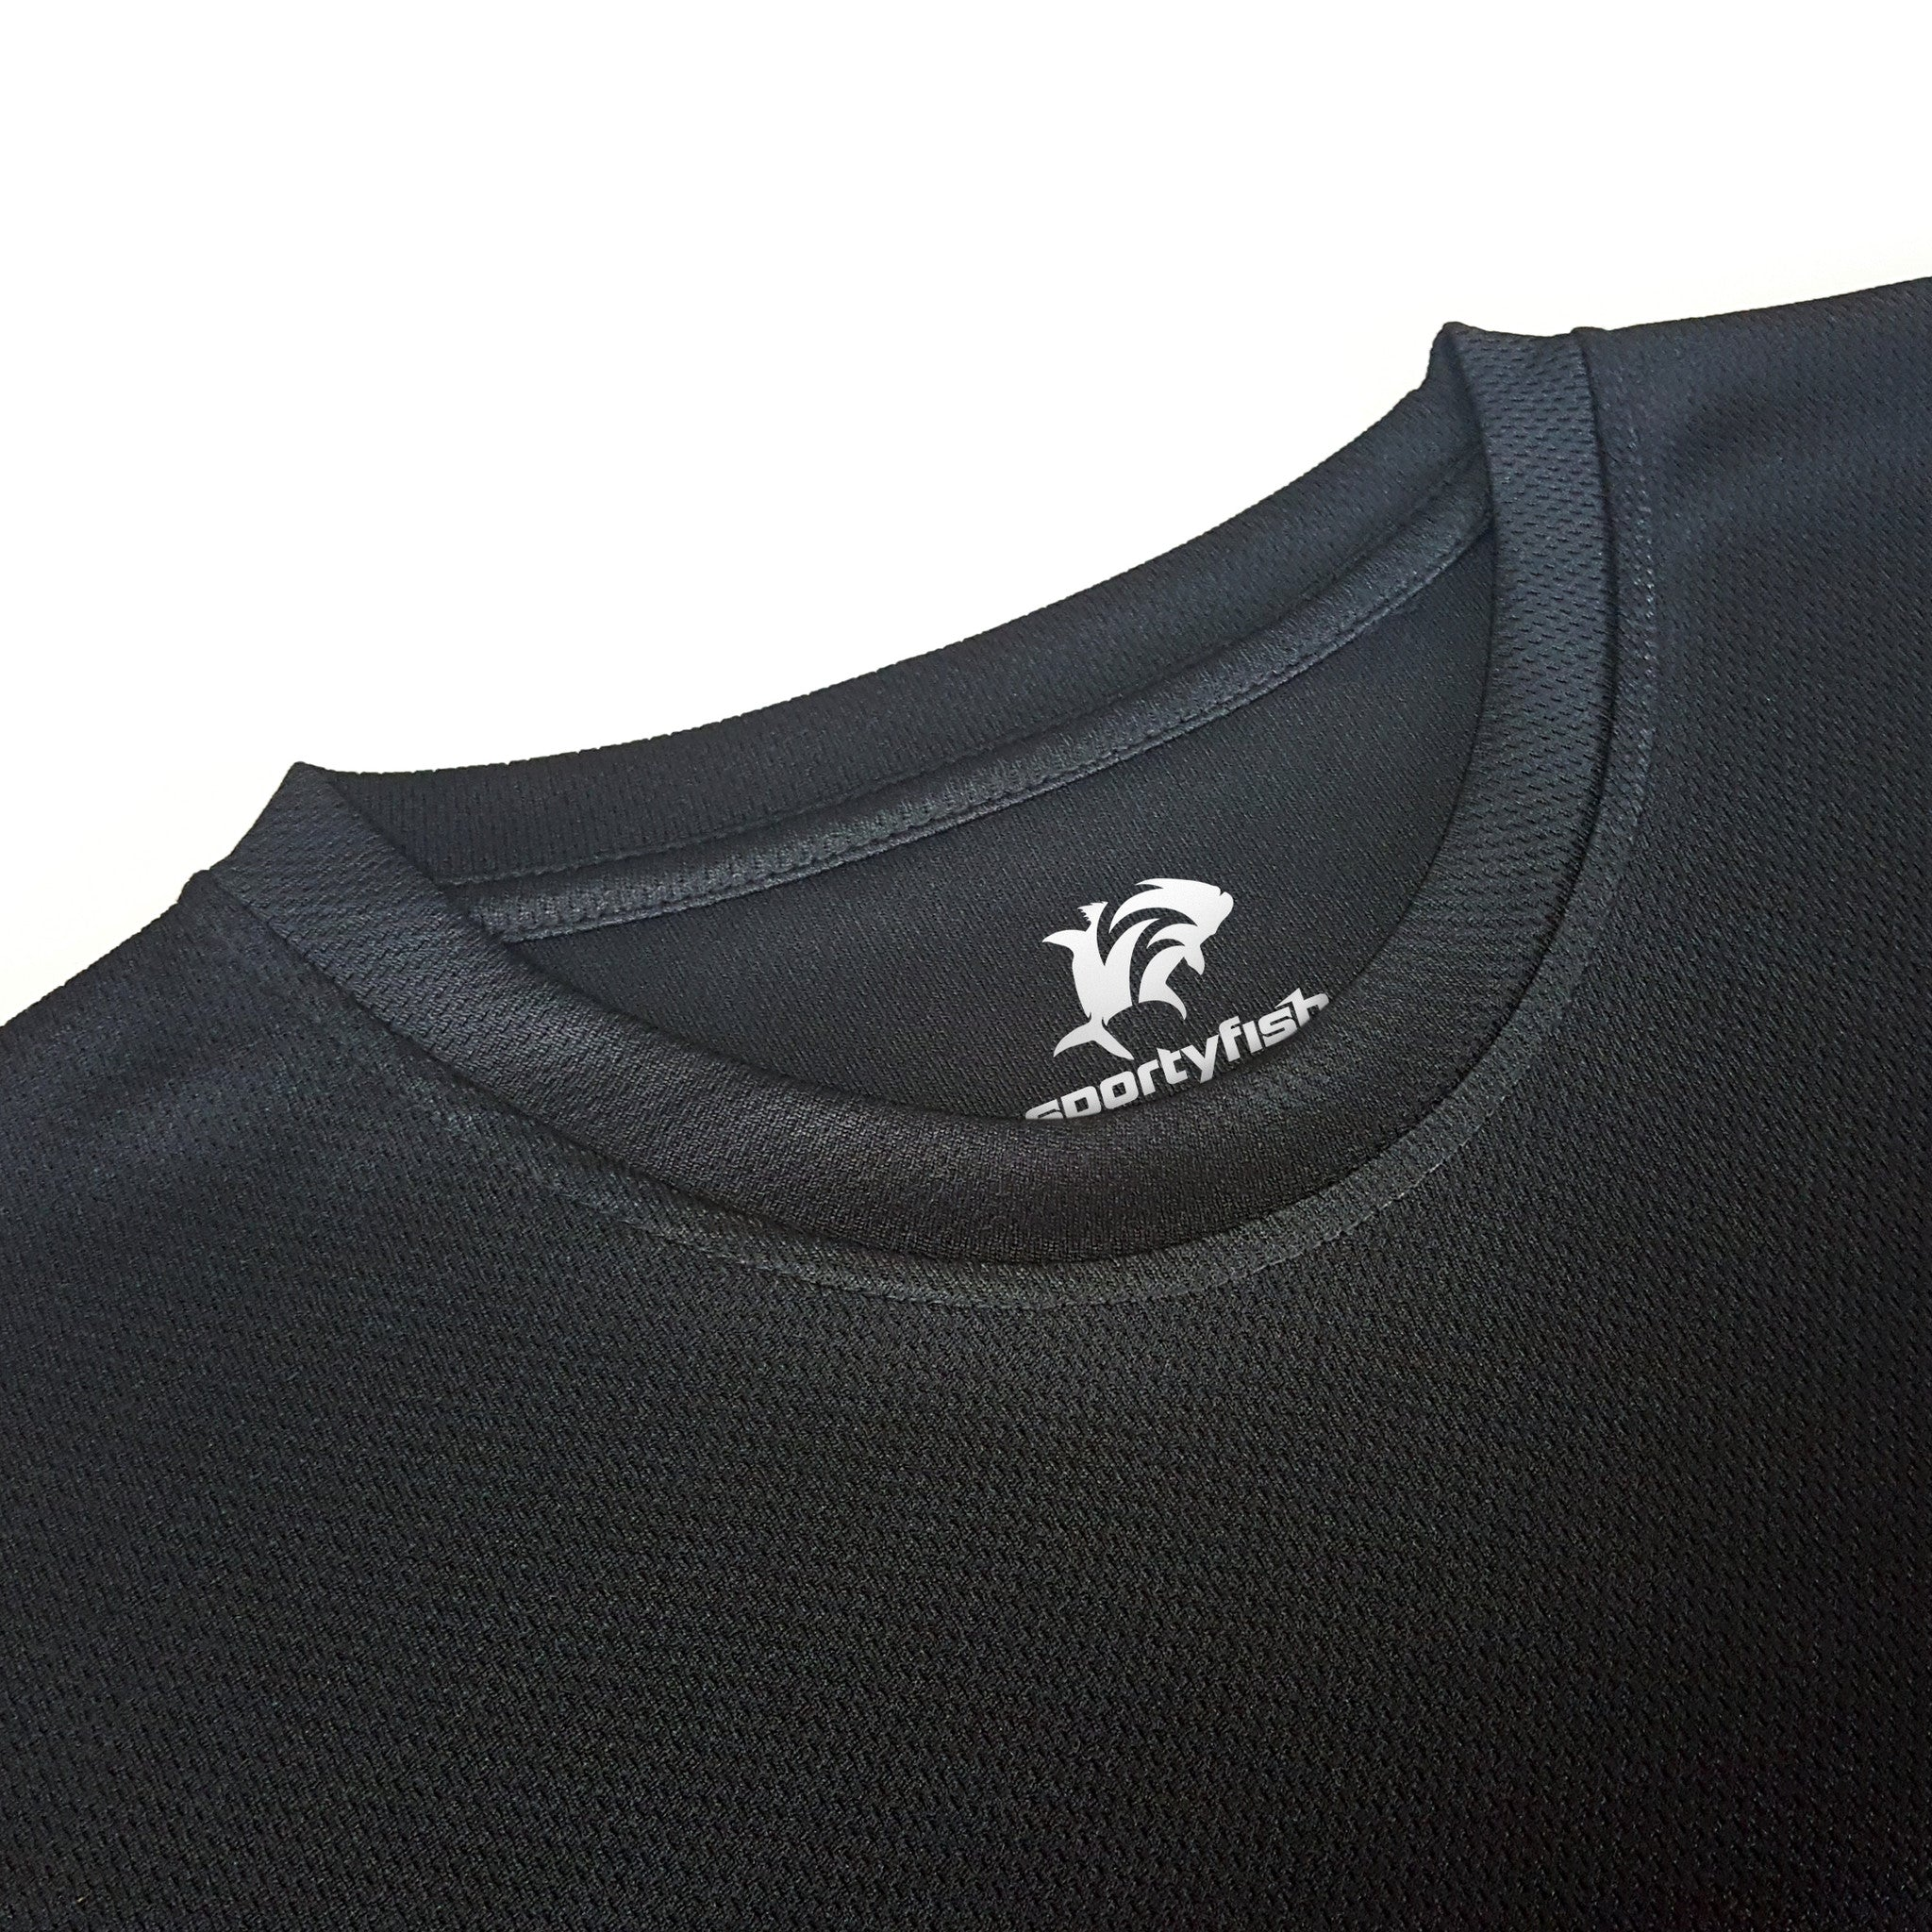 SportyFish Black Series black t-shirt: Yellowfin Tuna(Japanese words) close-up view 2